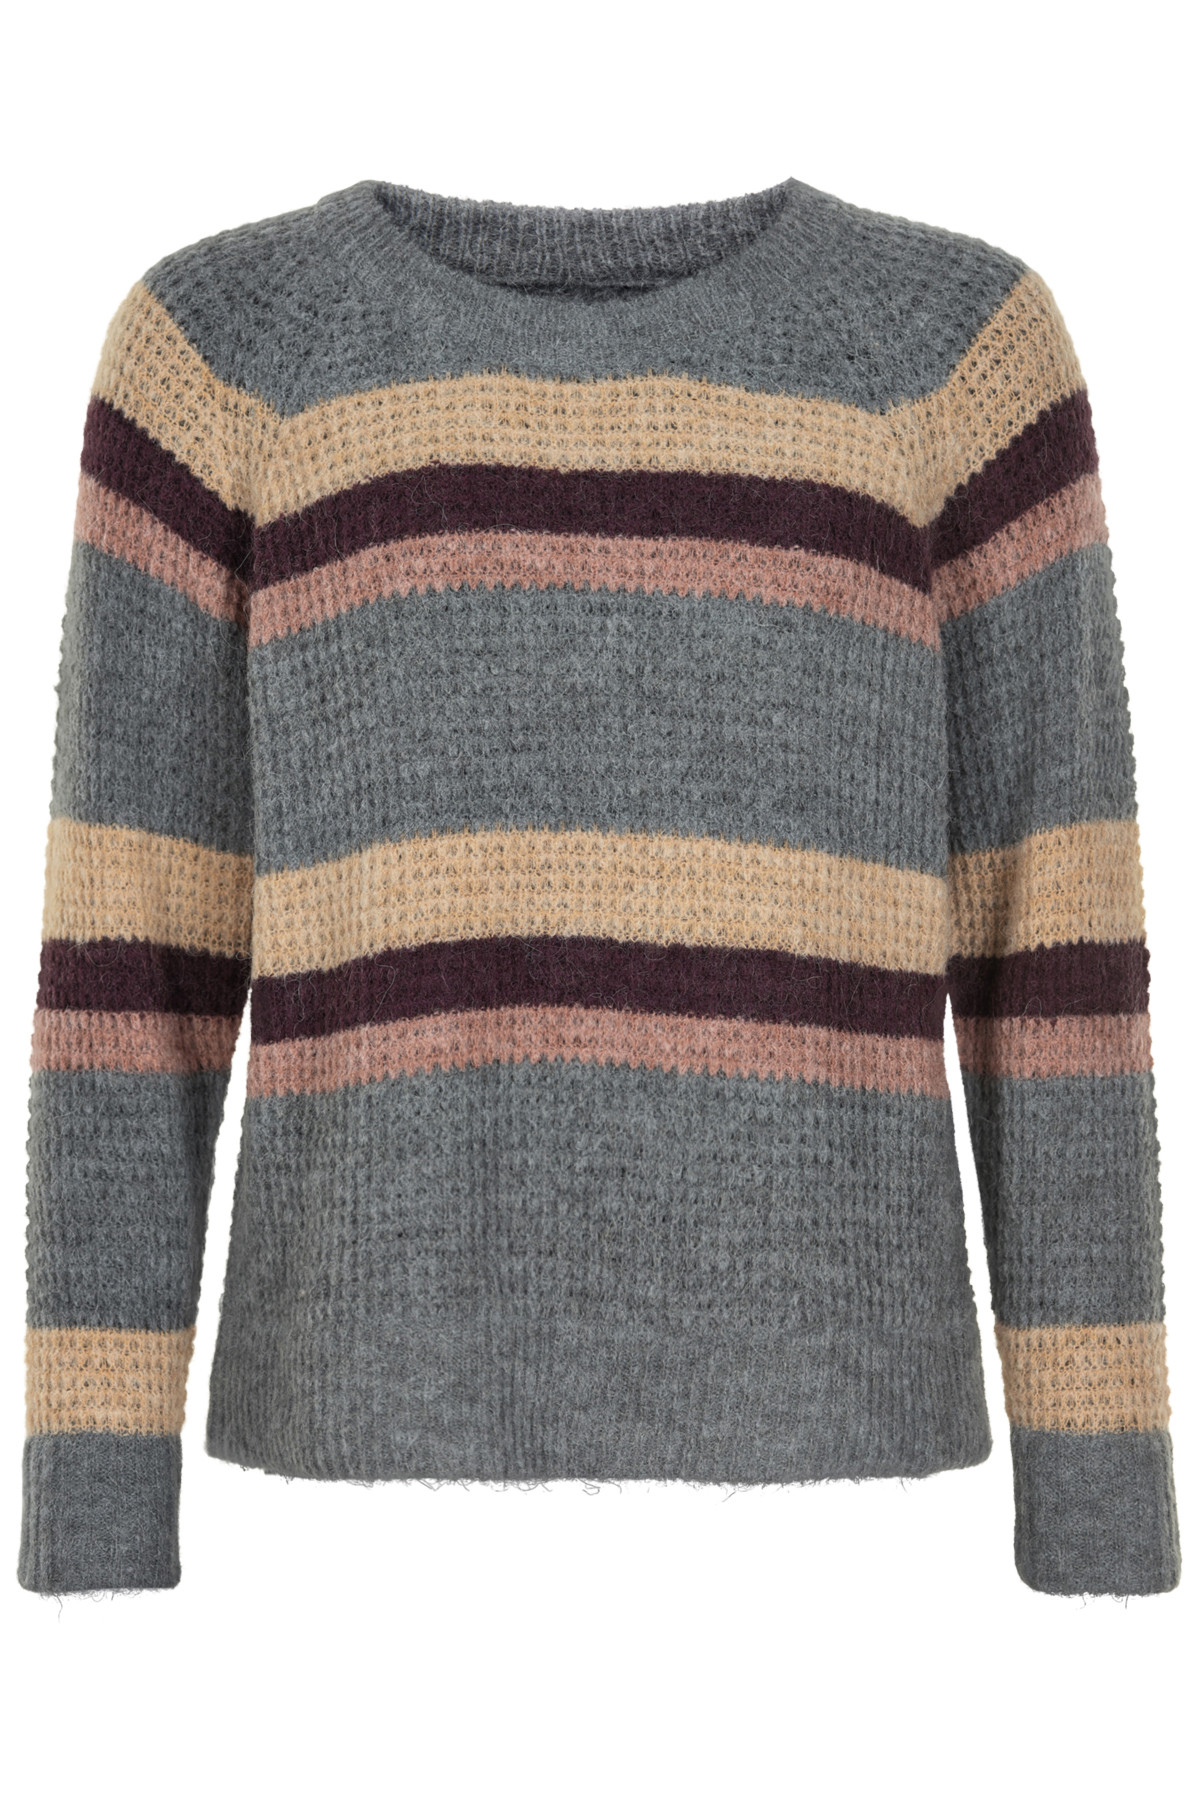 Image of   AND LESS BAMBINA PULLOVER 5419202 S (Sedona, M)